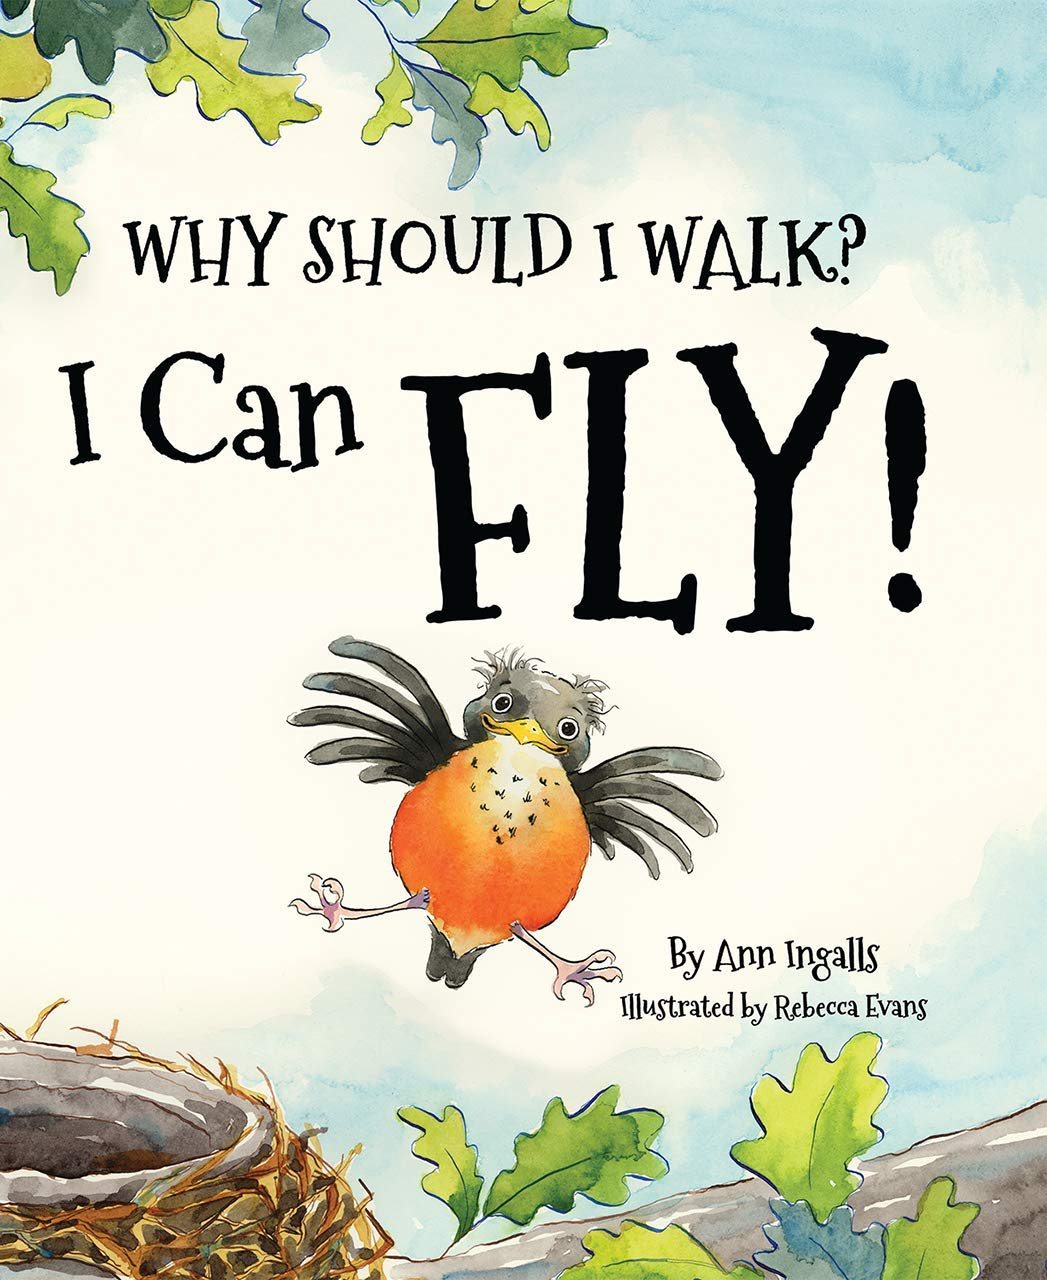 Why Should I Walk? I Can Fly!